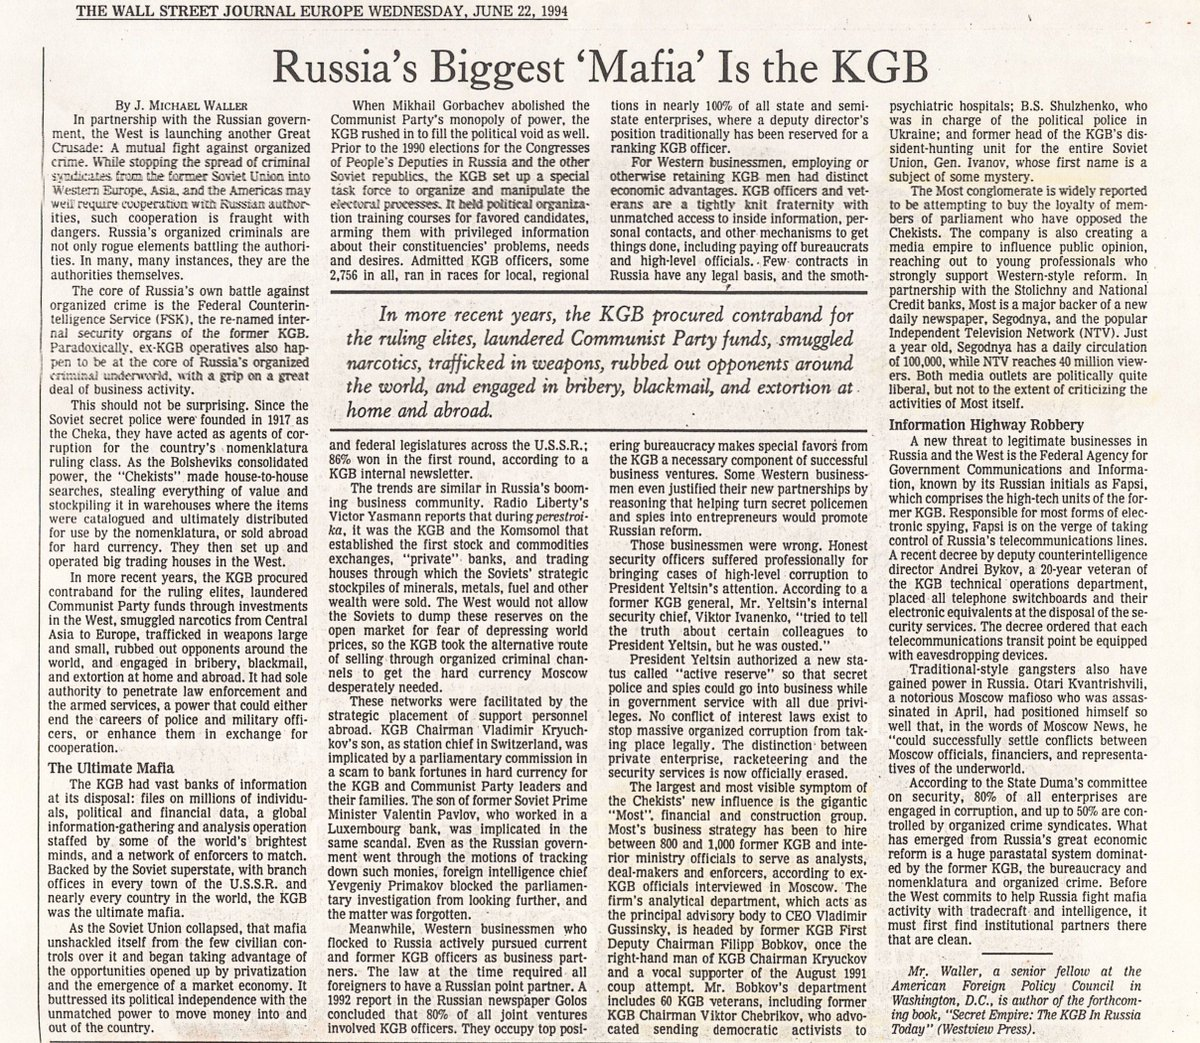 Reminder: Corrupt dealings with #Russia started 20+ years ago in the Clinton Admin. @JMichaelWaller explains  http:// jmichaelwaller.com/wp-content/upl oads/2002/08/WSJ-Russia-Mafia-KGB-1994.06.22.pdf &nbsp; … <br>http://pic.twitter.com/CL6PvsNiGp